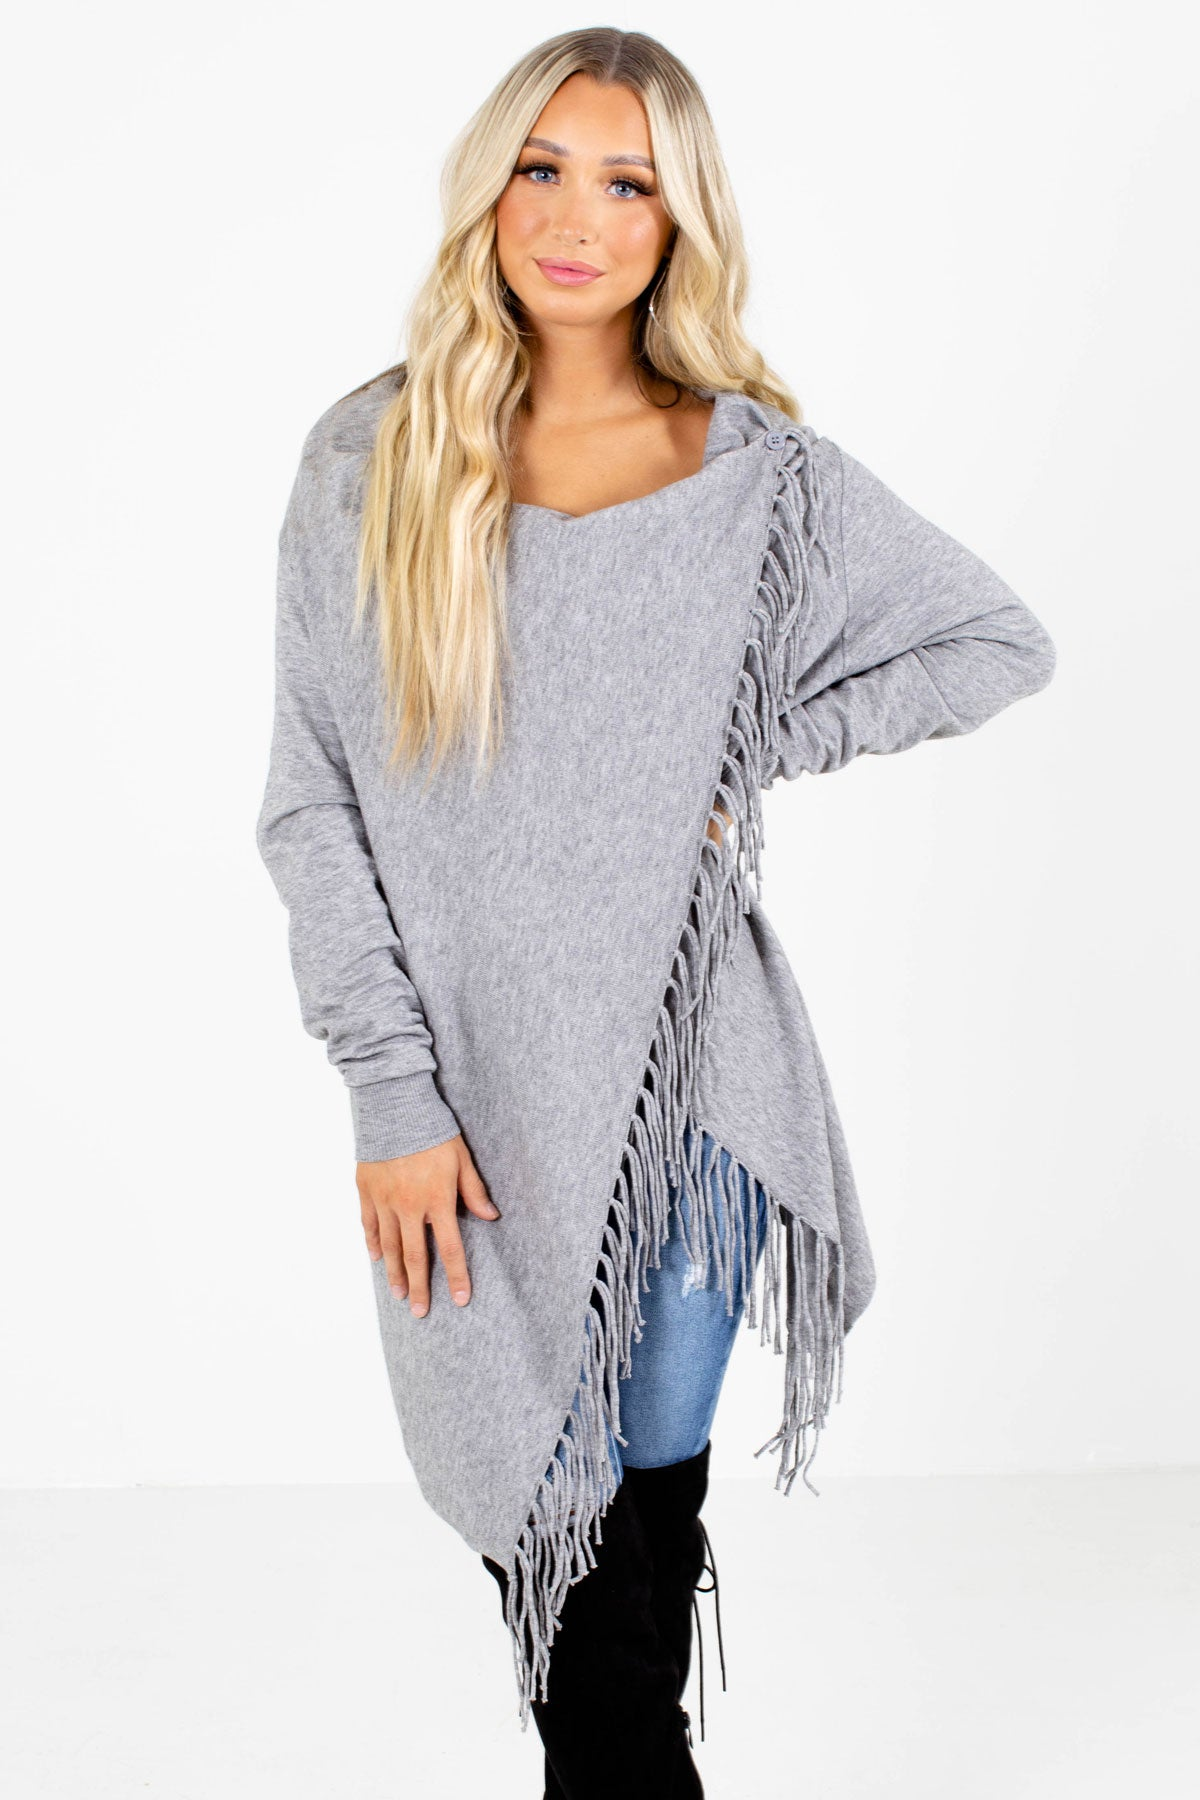 Gray Fringe Detailed Boutique Cardigans for Women